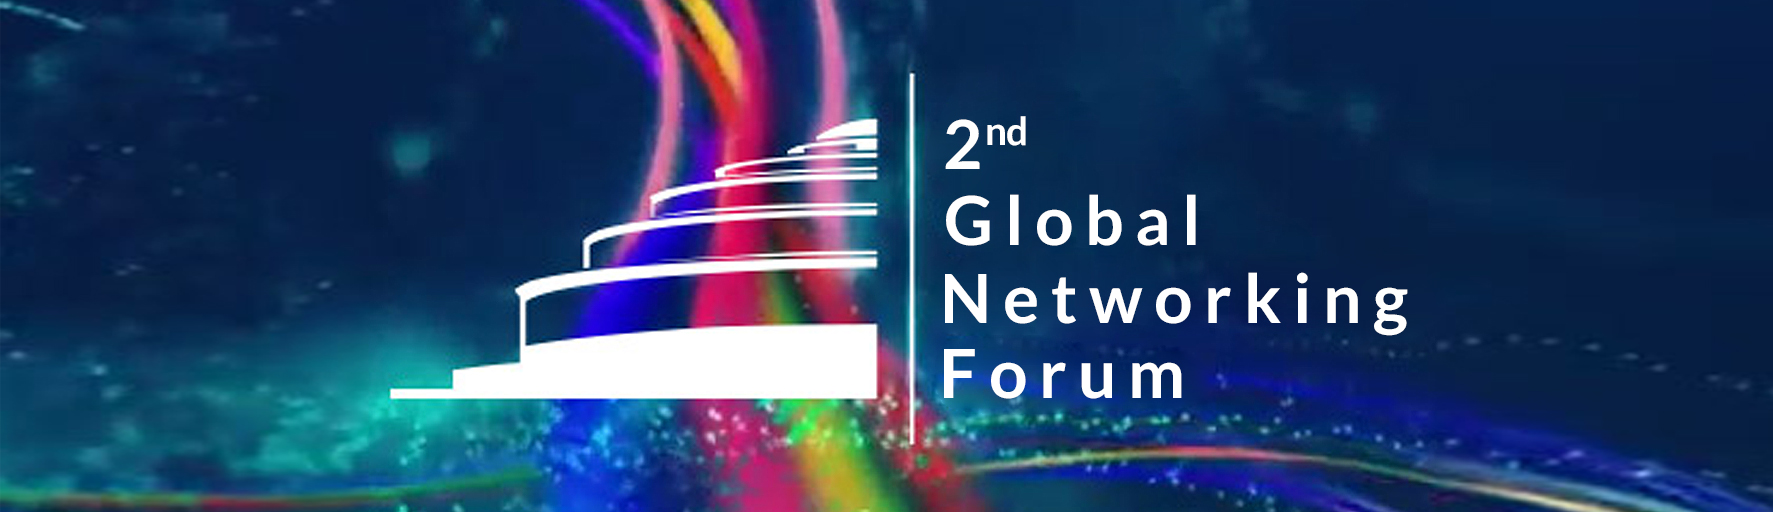 2nd Global Networking Forum - Wroclaw 2017